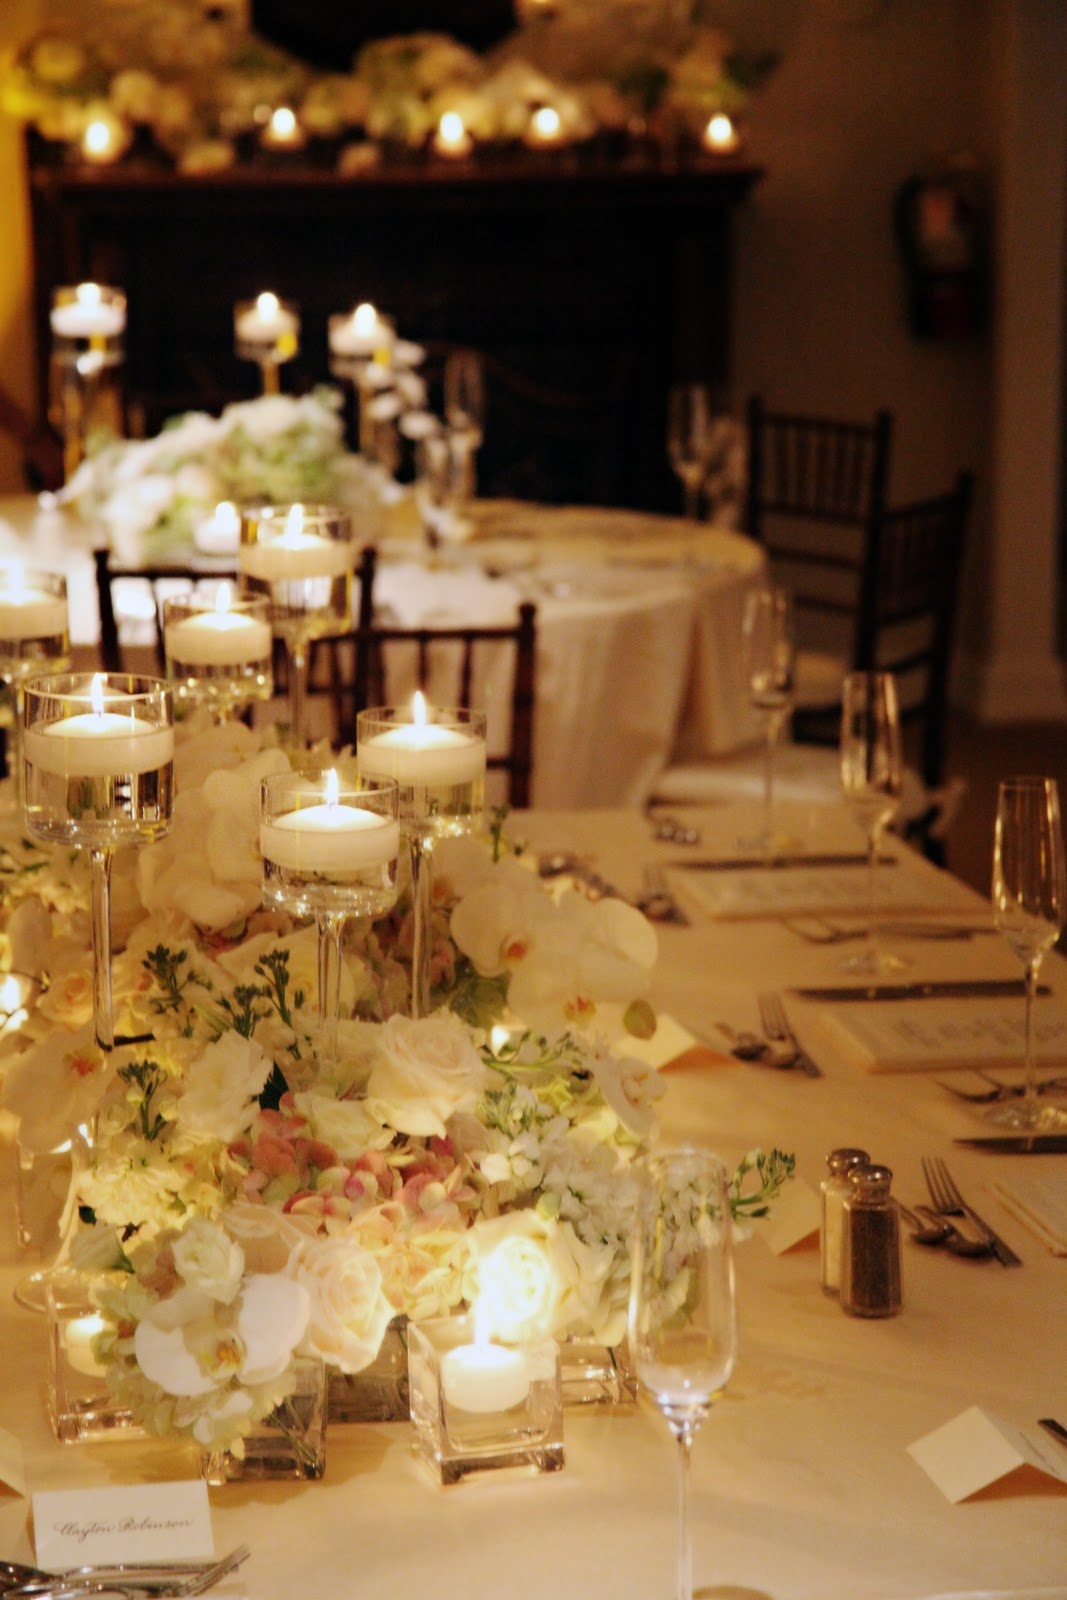 And Table Pink Decorations Wedding Champagne